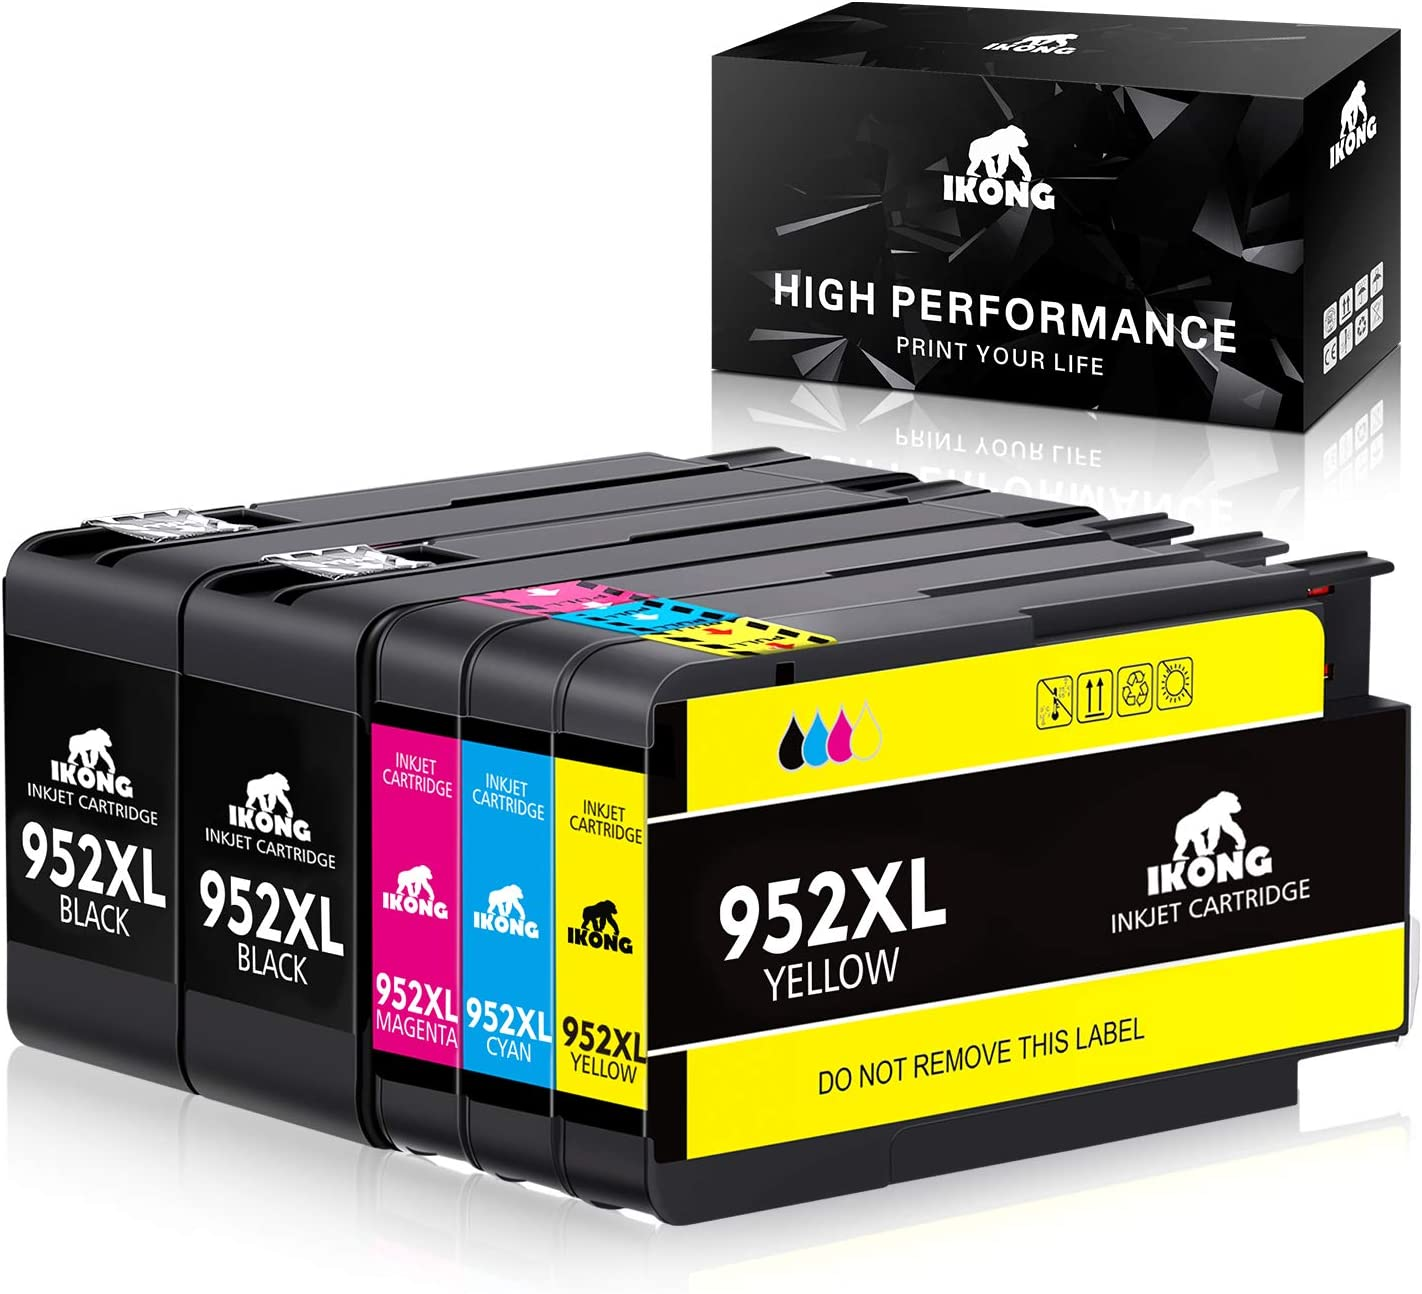 IKONG Compatible Ink Cartridge Replacement for HP 952XL 952 XL Use with OfficeJet Pro 8710 8720 8740 8730 7740 8210 8715 8216 8725 8702 Printer 5-Pack